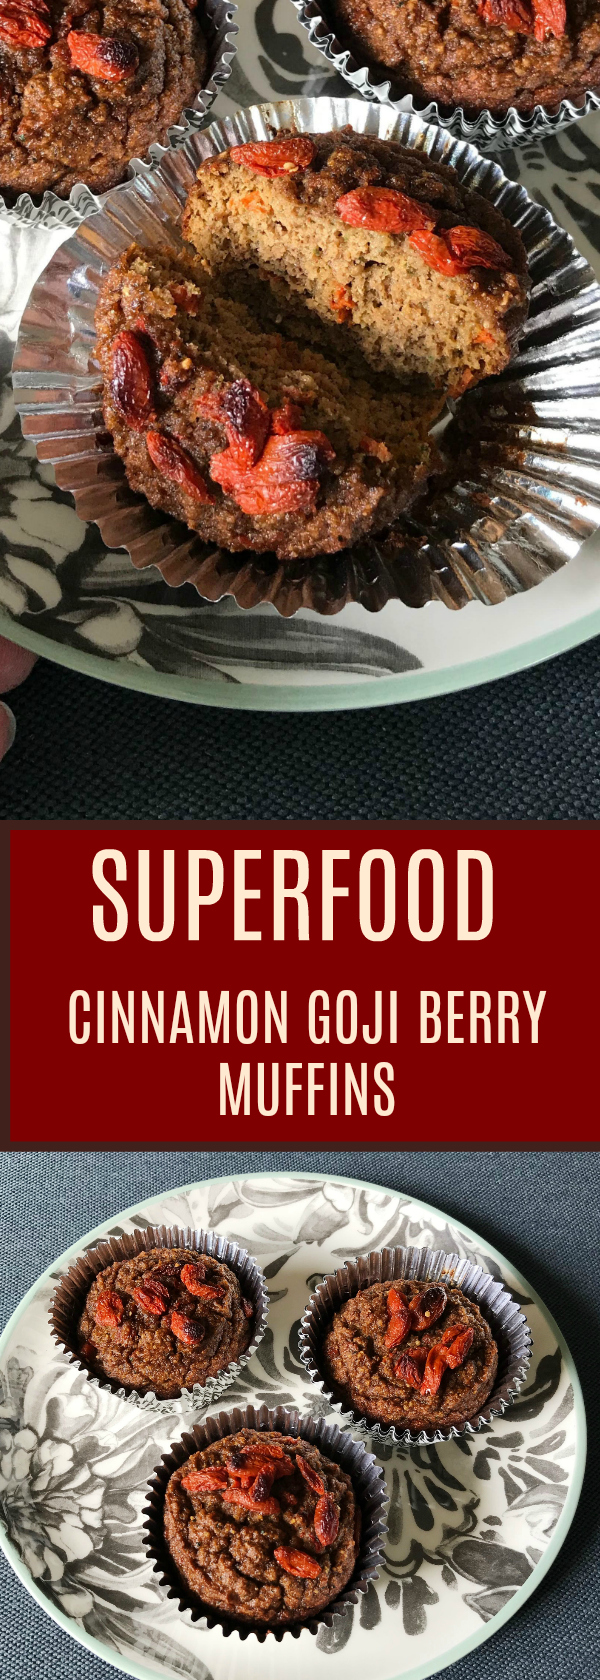 Grain Free Superfood Muffins! Paleo, Dairy Free deliciousness!